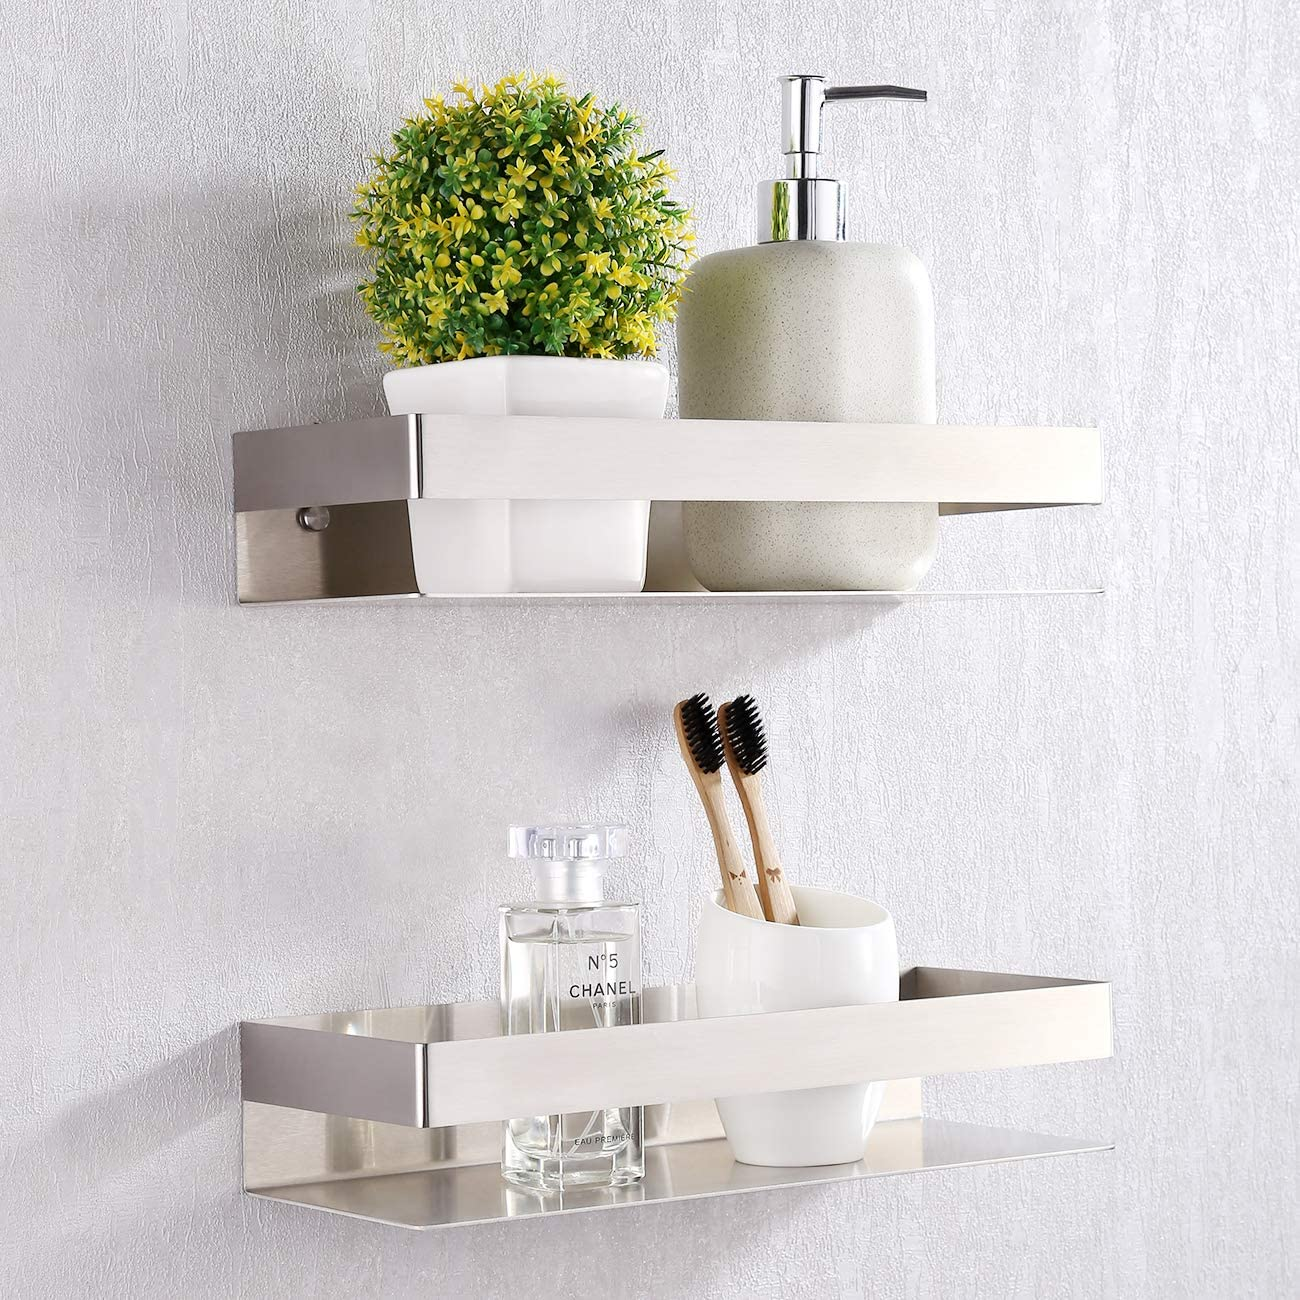 BSC205S30A-P2 KES Shower Caddy SUS 304 Stainless Steel Bathromm Basket Storage Shelf 2 Tier Hanging Organizer Wall Mount 30 CM or 11-Inch Polished Finish